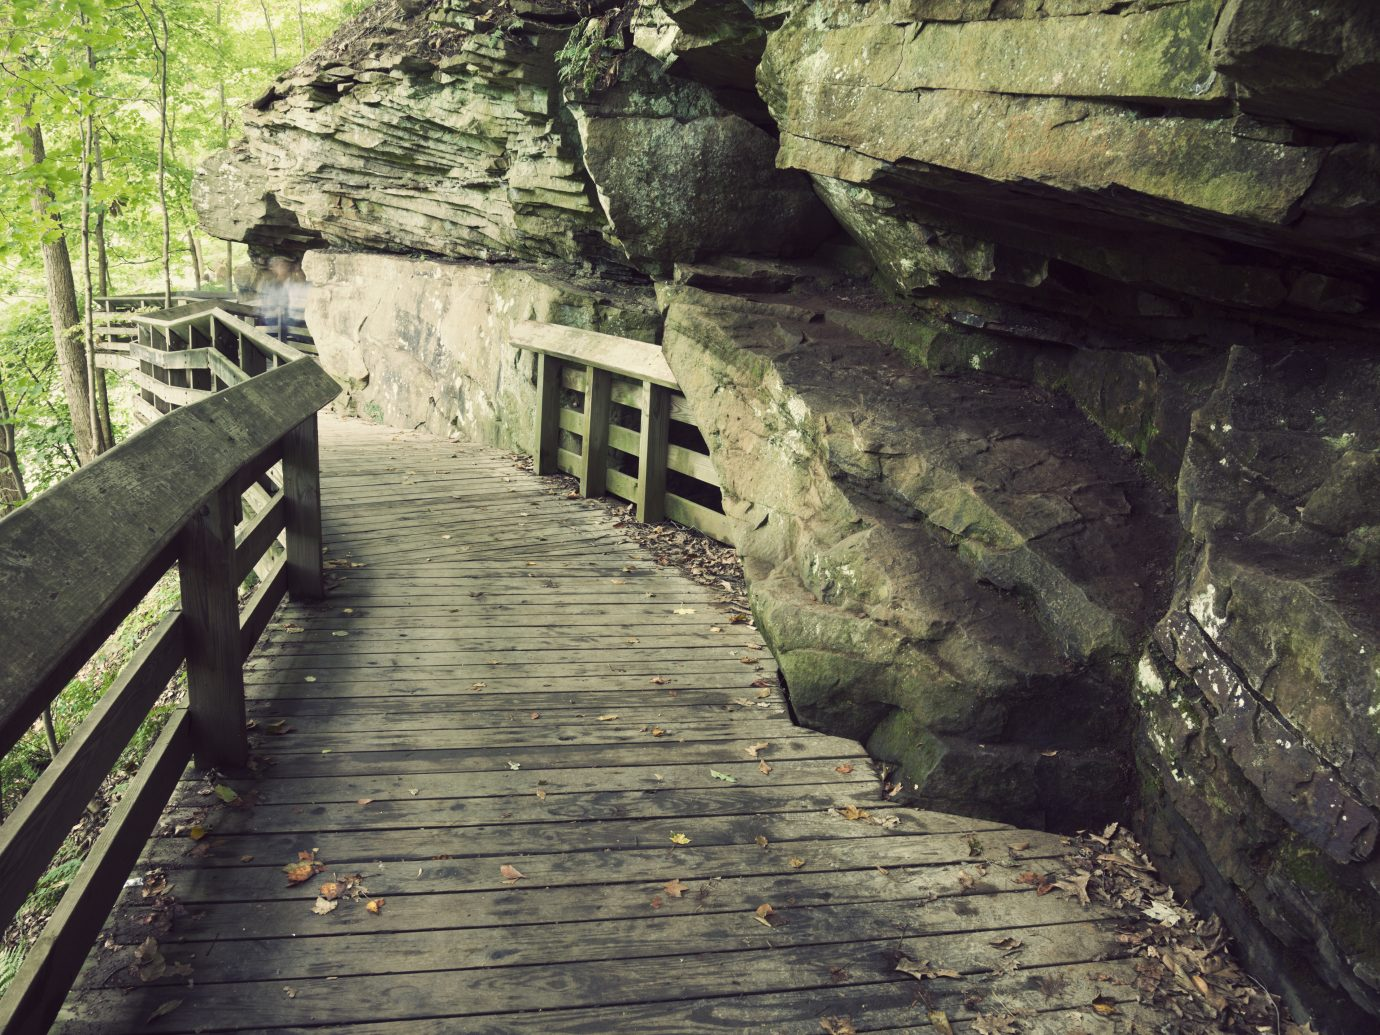 Tourist trail to Brandwine Falls in Cuyahoga Valley National Park.